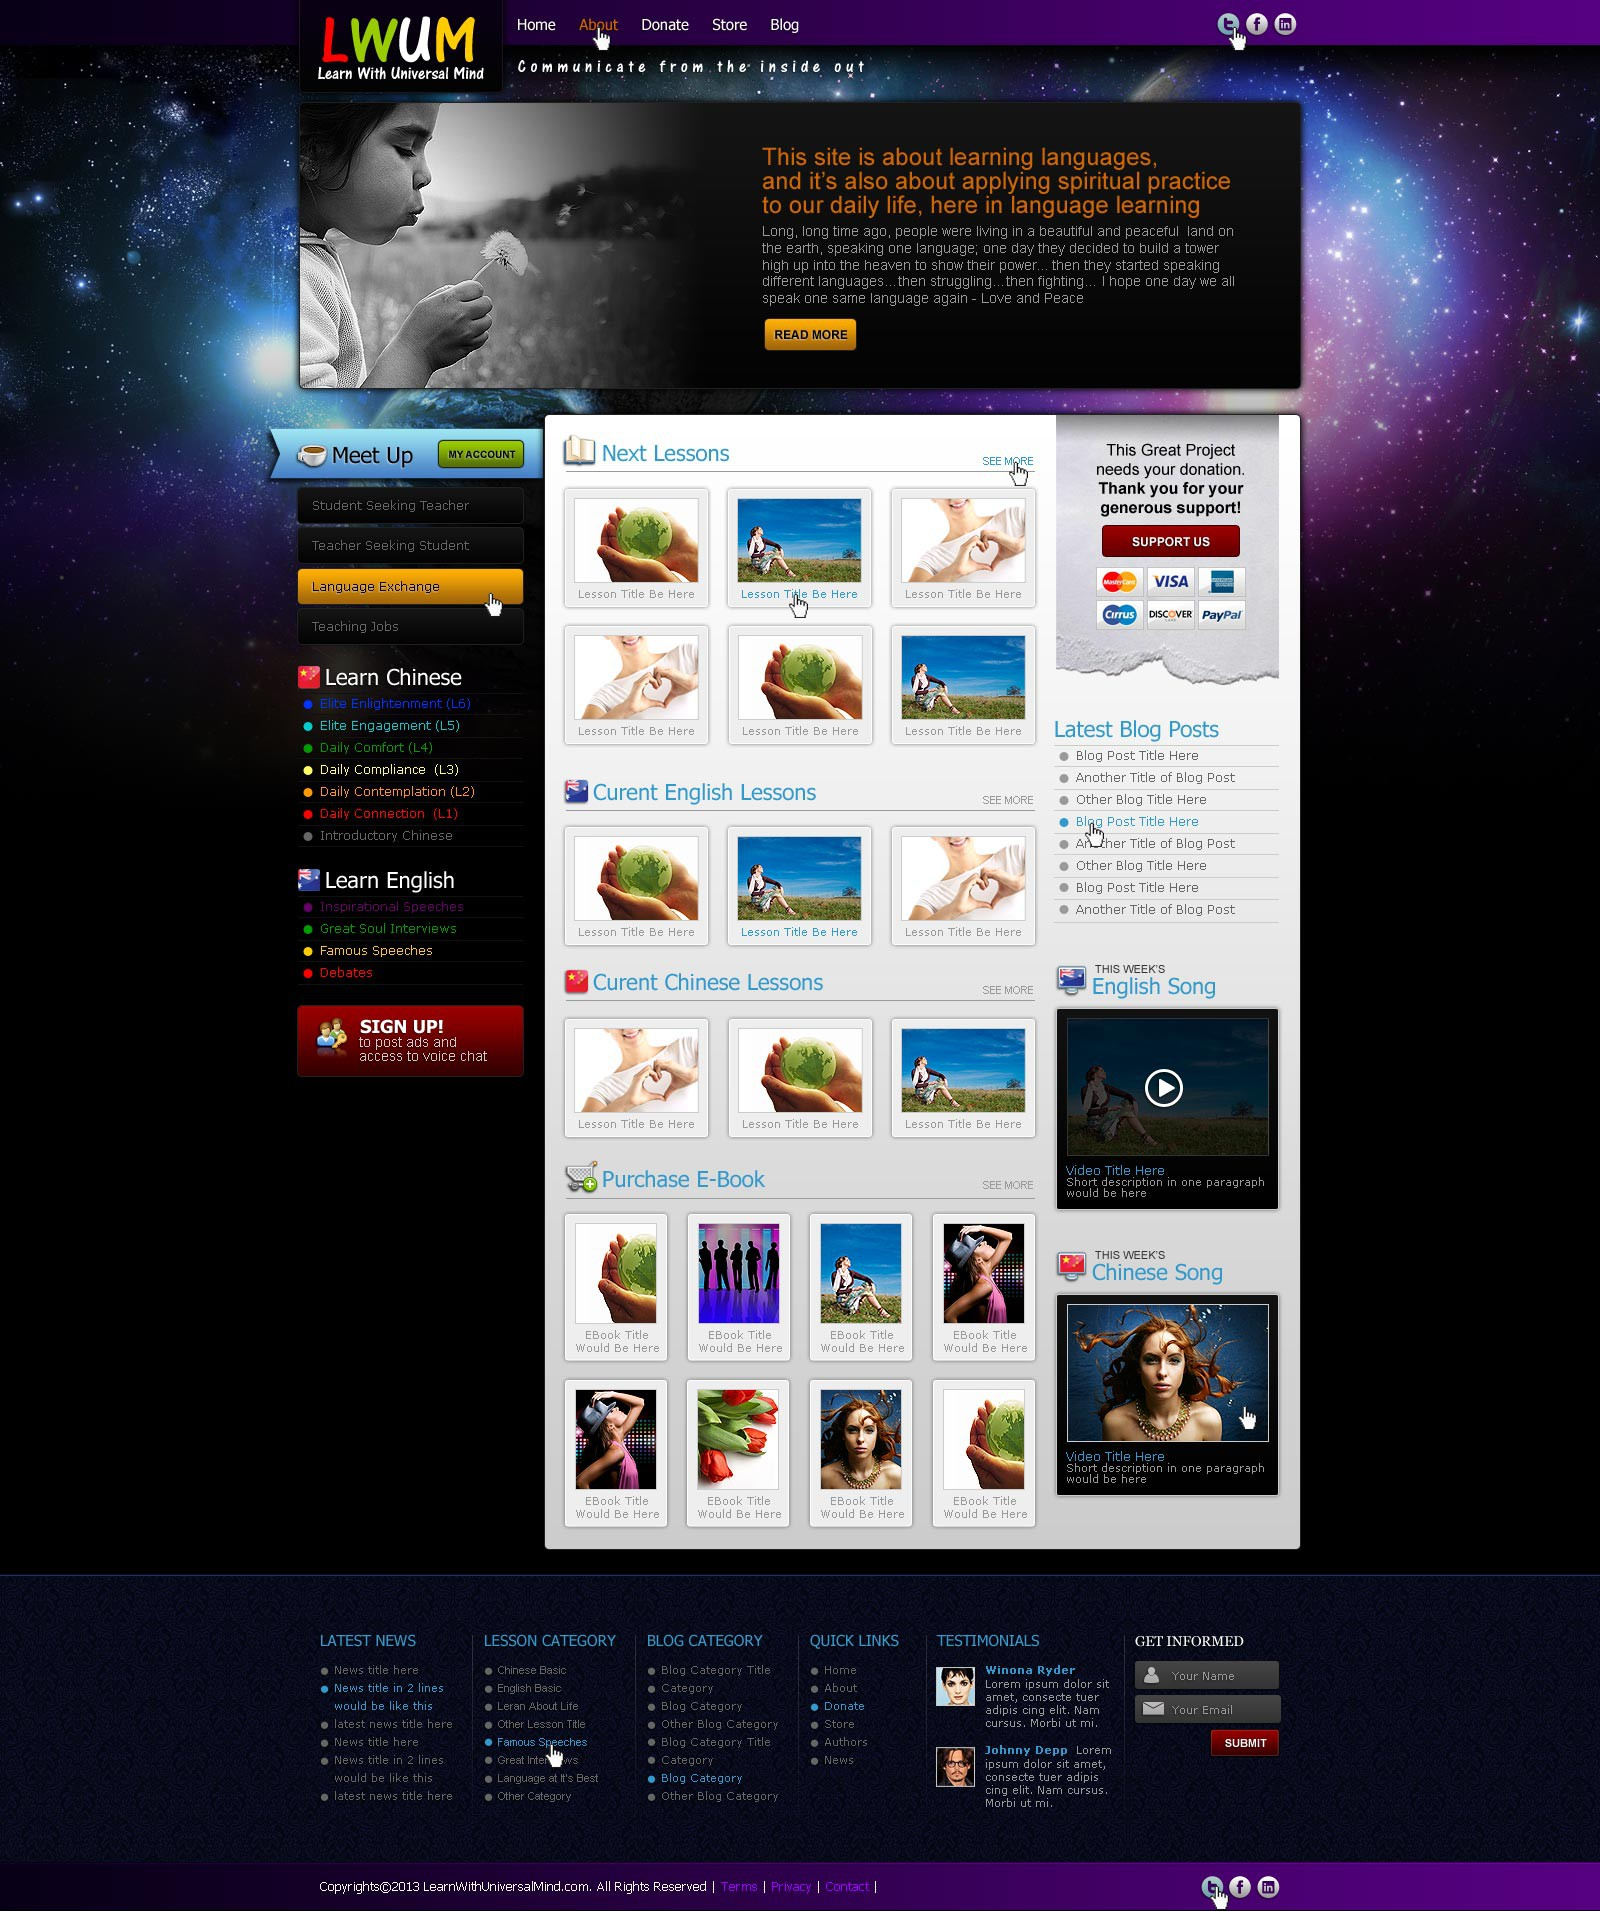 learnwithuniversalmind.com   is a nonfrofit online educational community needs a new website design